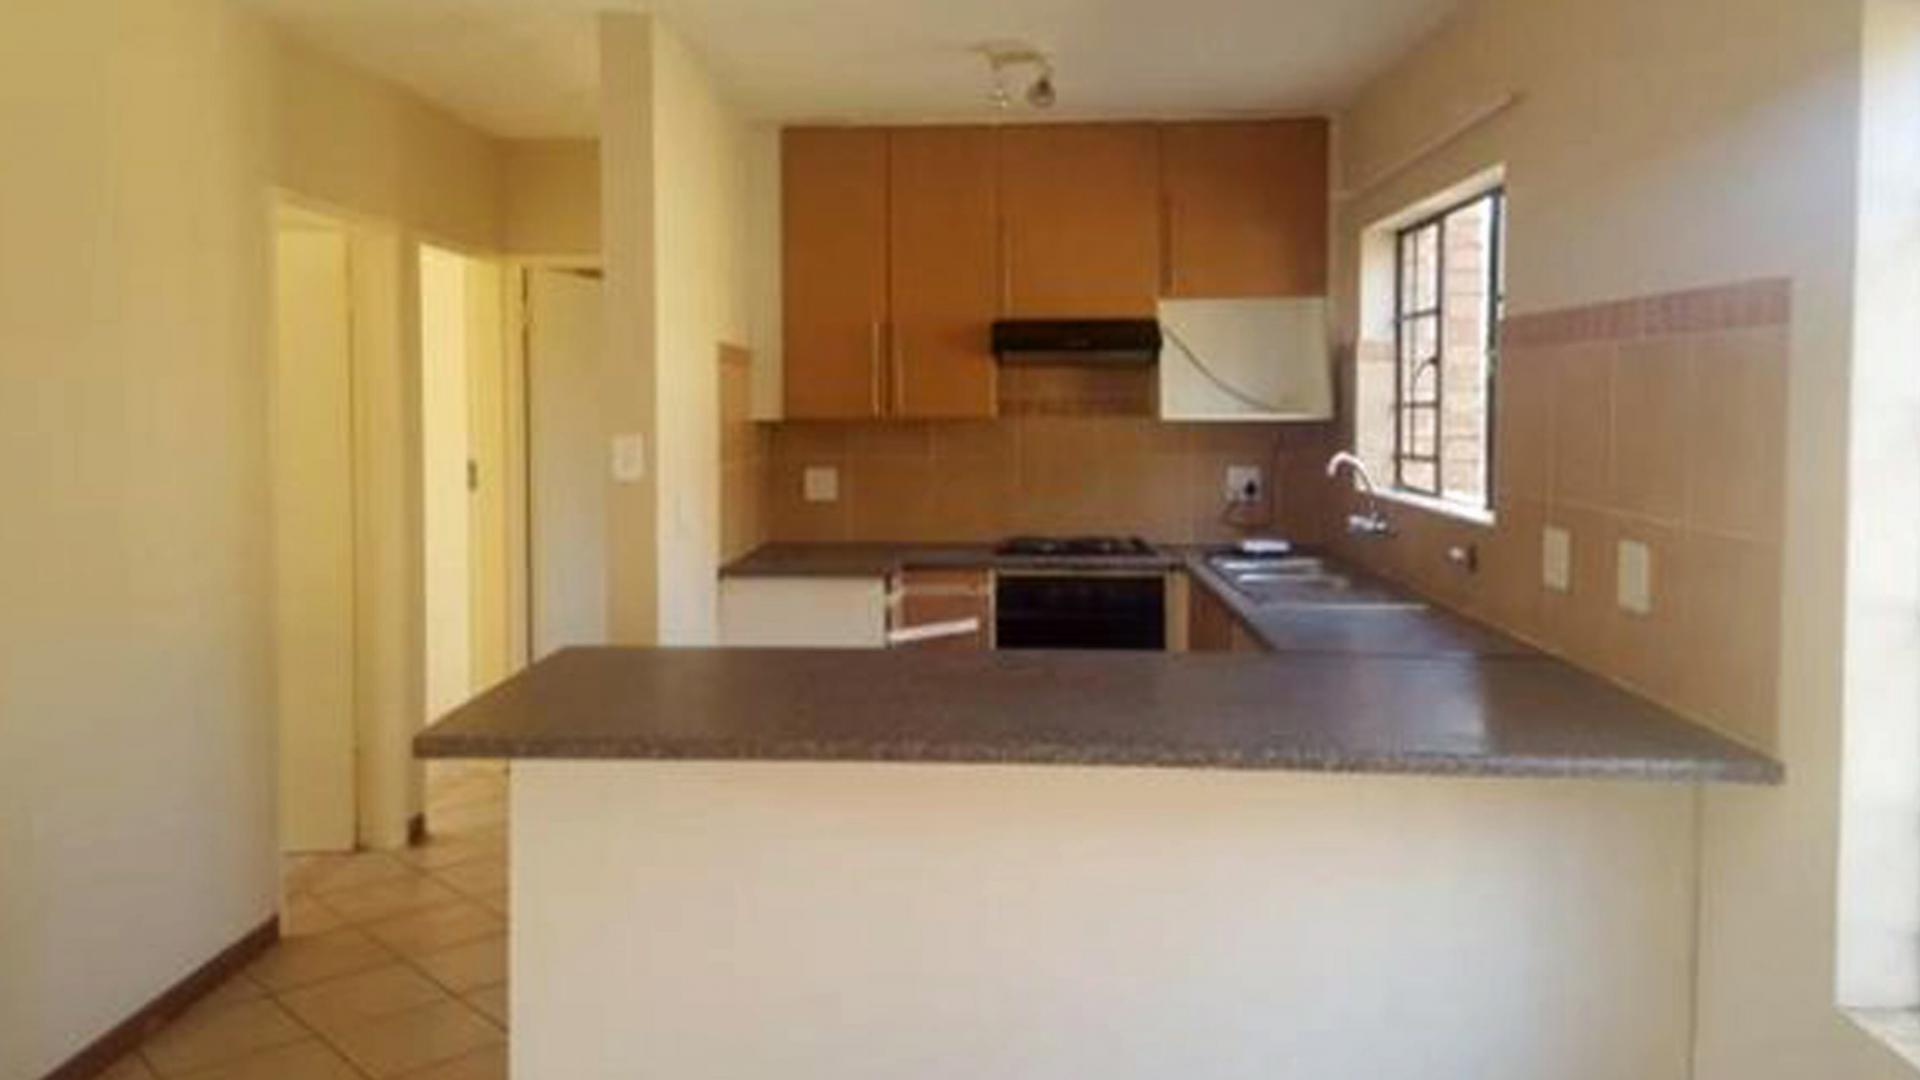 Kitchen of property in Eco-Park Estate